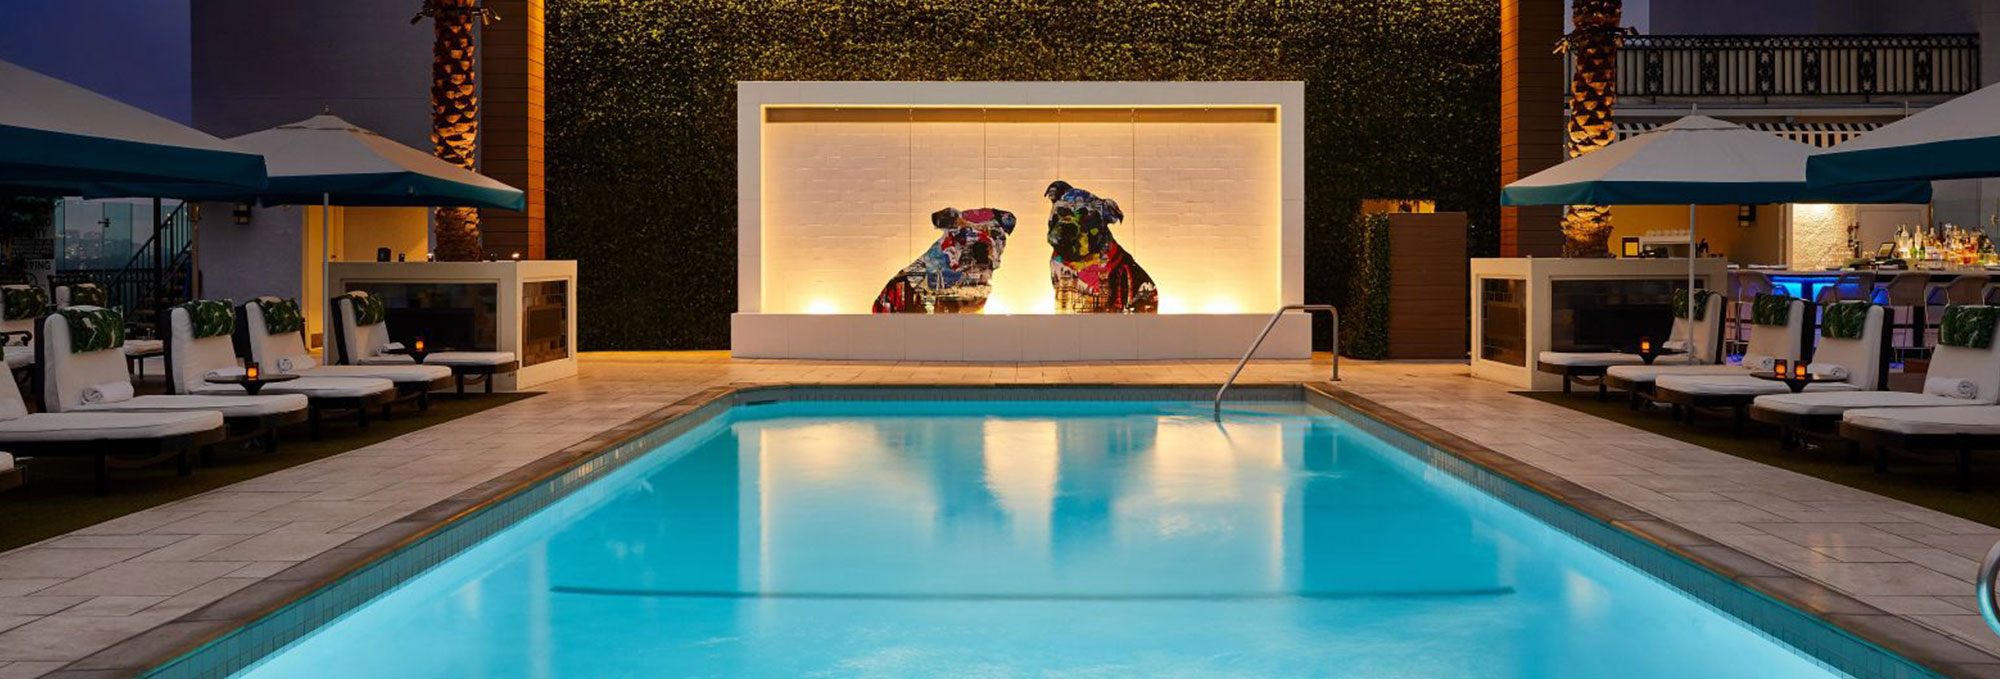 Night time shot of a pool with pug statues at the London West Hollywood